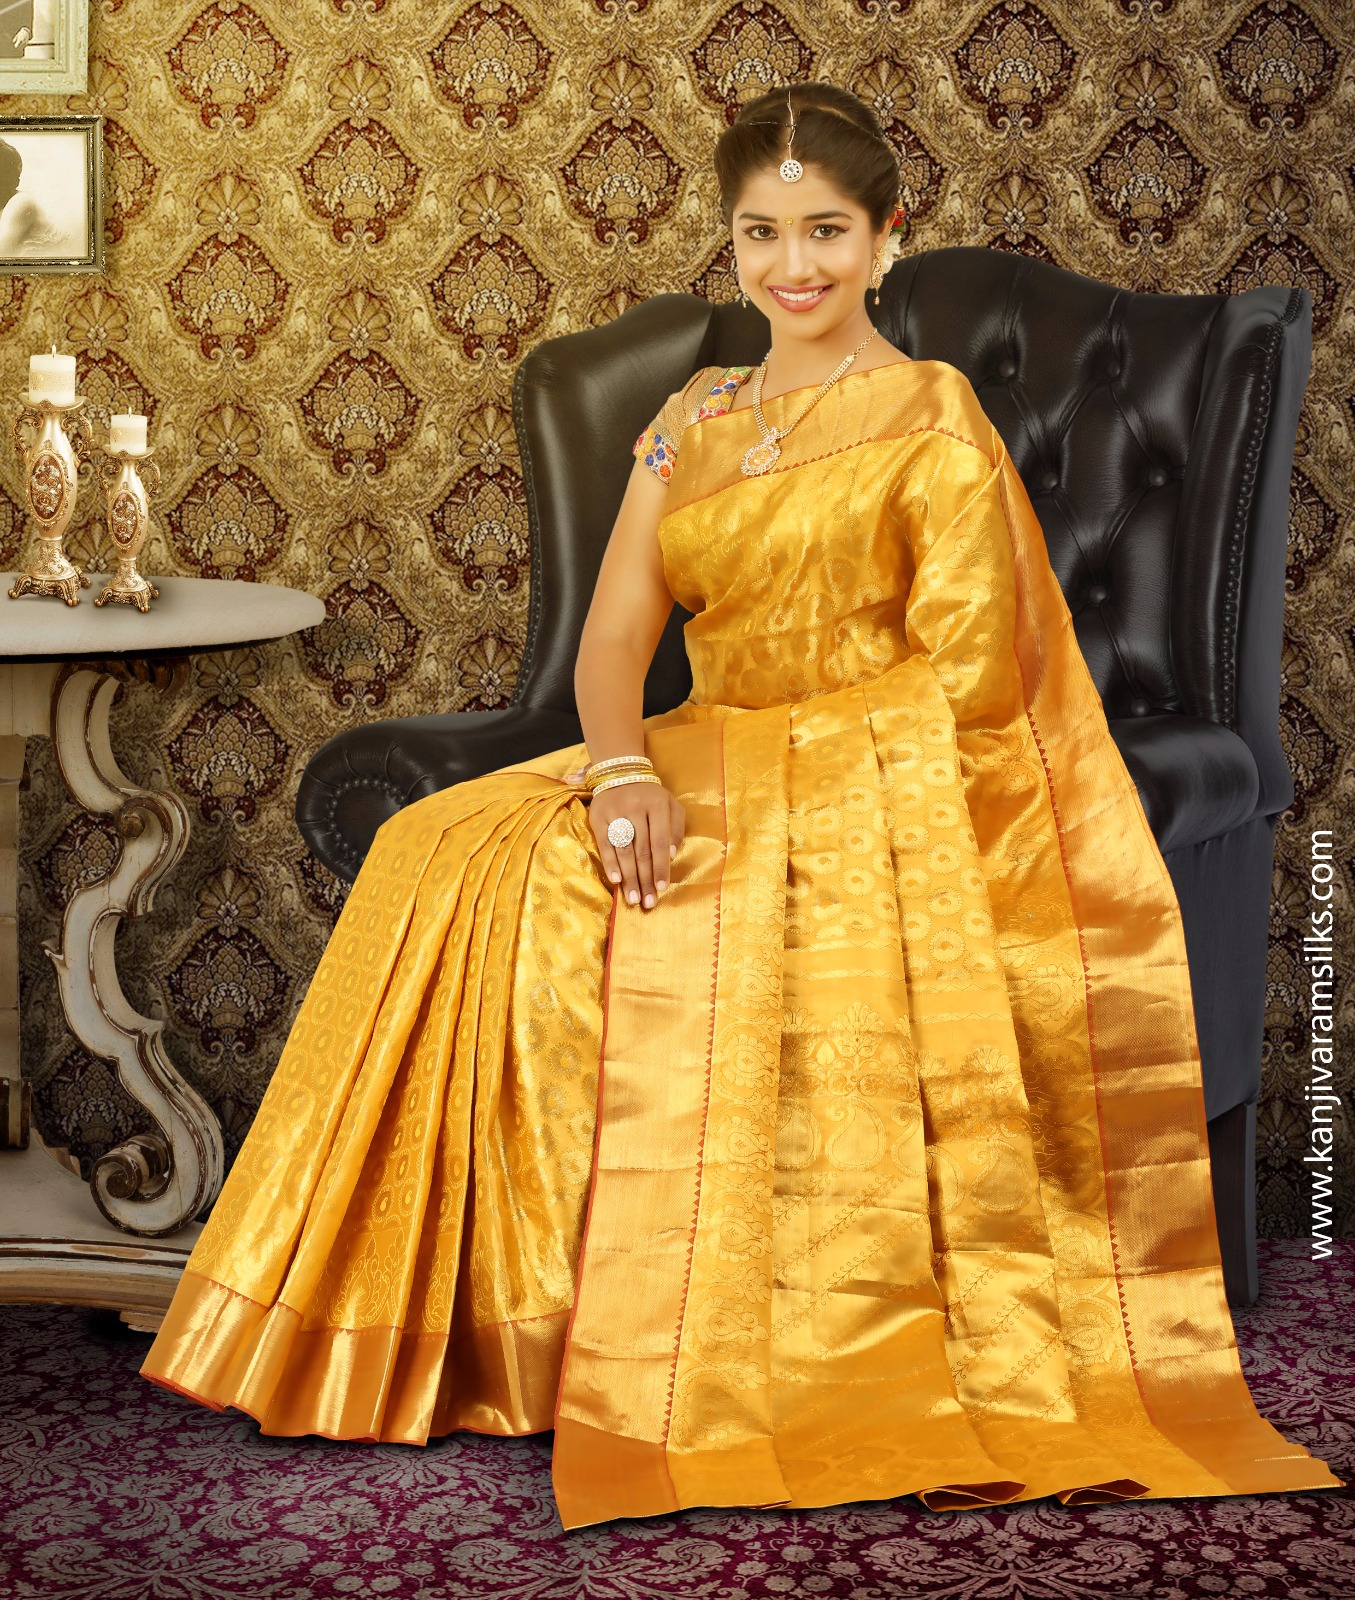 Bridal Kanjivaram Sarees Launched at Kanchipuram Saree Store